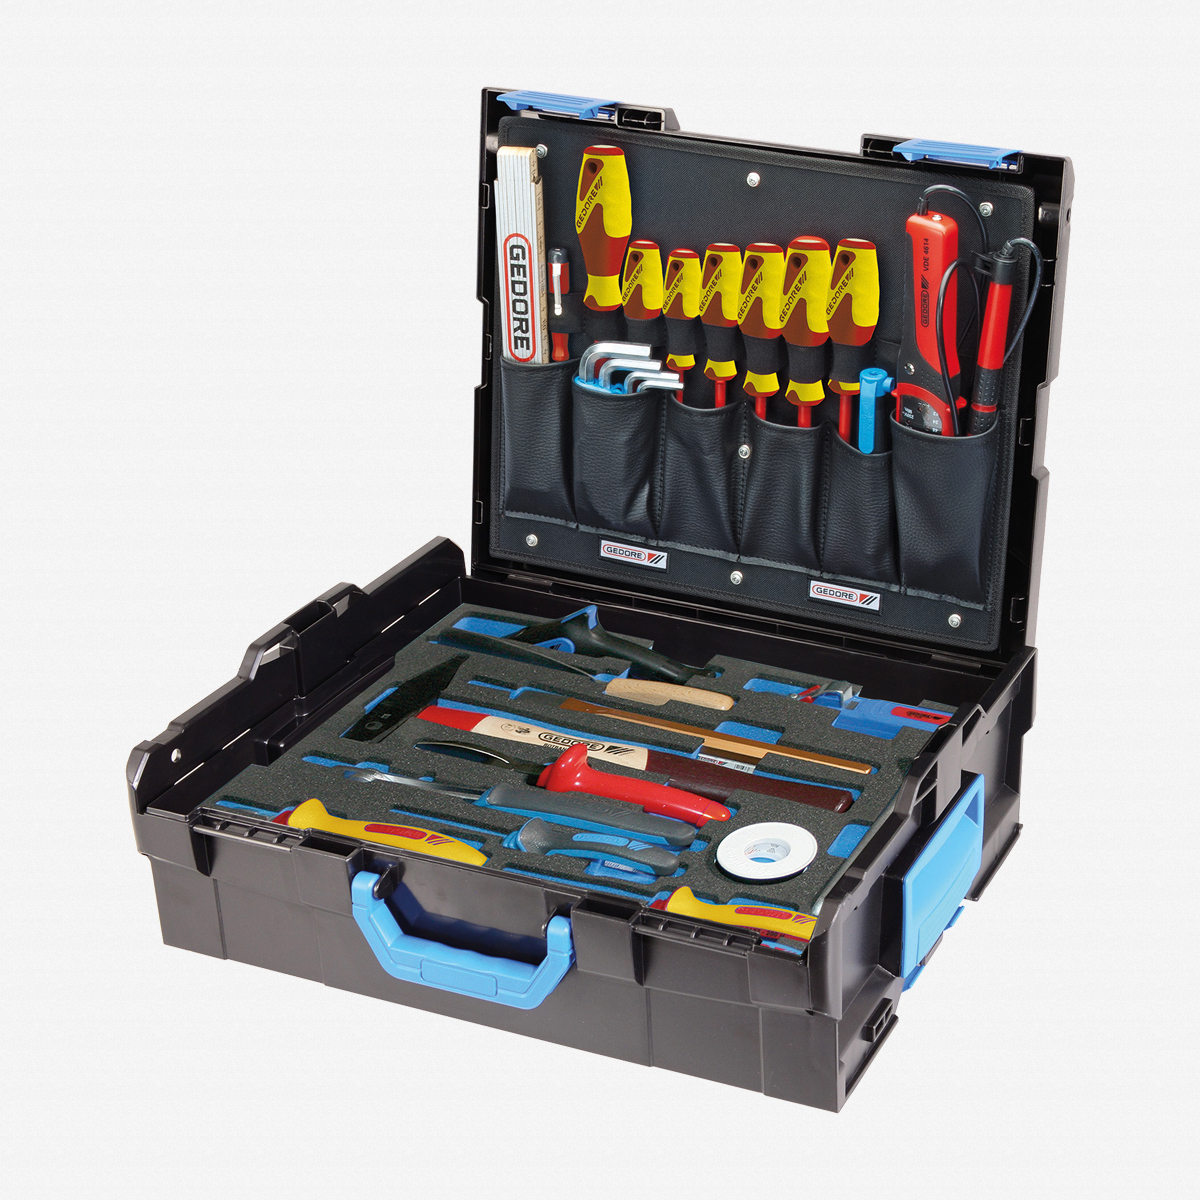 gedore 1100 02 gedore sortimo l boxx 136 with assortment electrician 36 pc. Black Bedroom Furniture Sets. Home Design Ideas